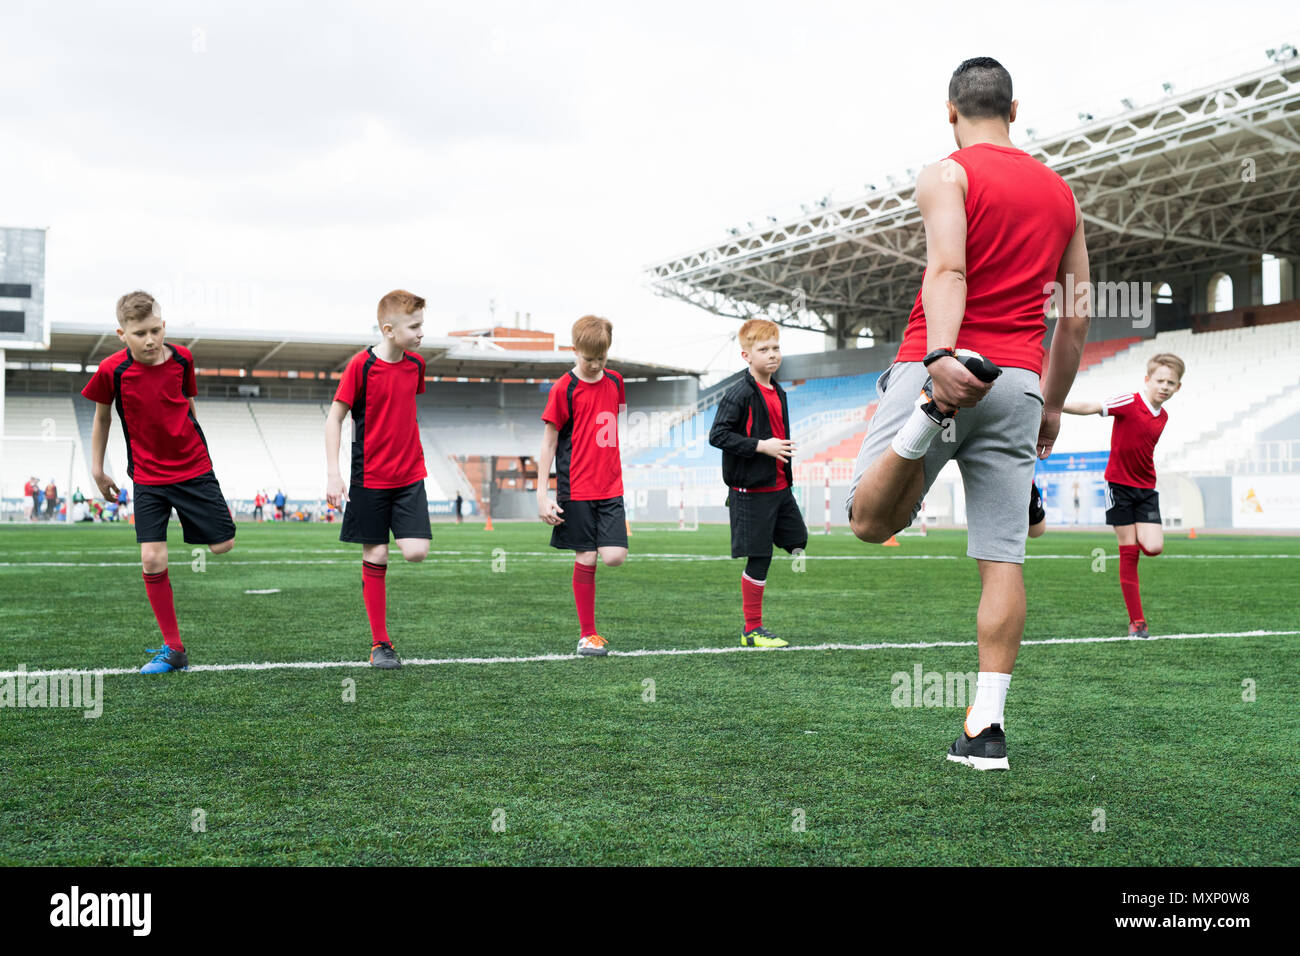 Warm-Up before Football Practice - Stock Image